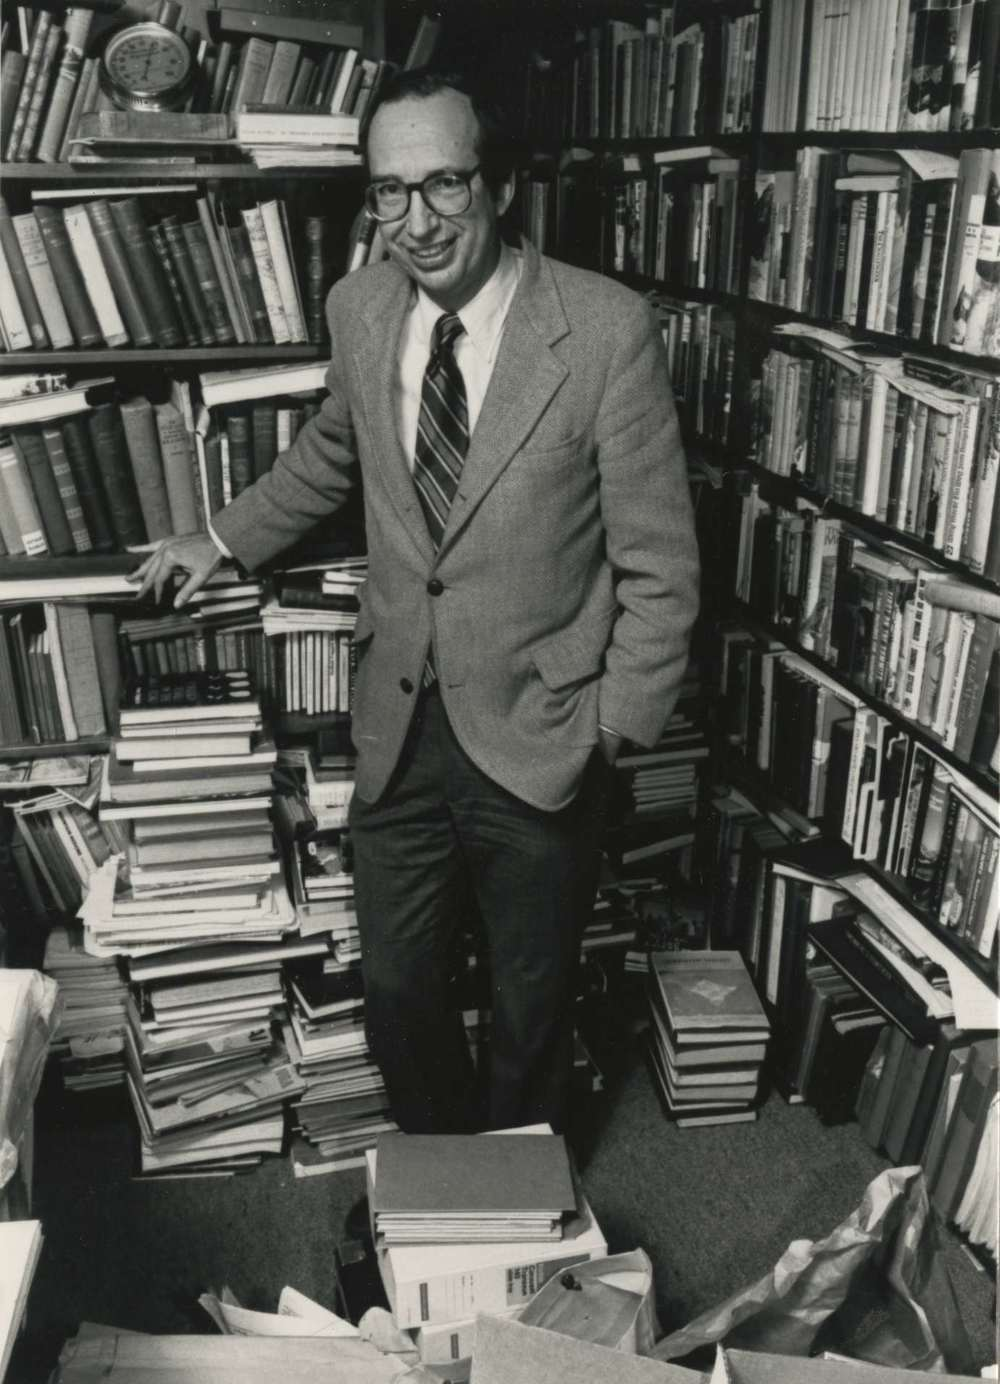 Nick and his books at his home library. Photo: Clinch Collection